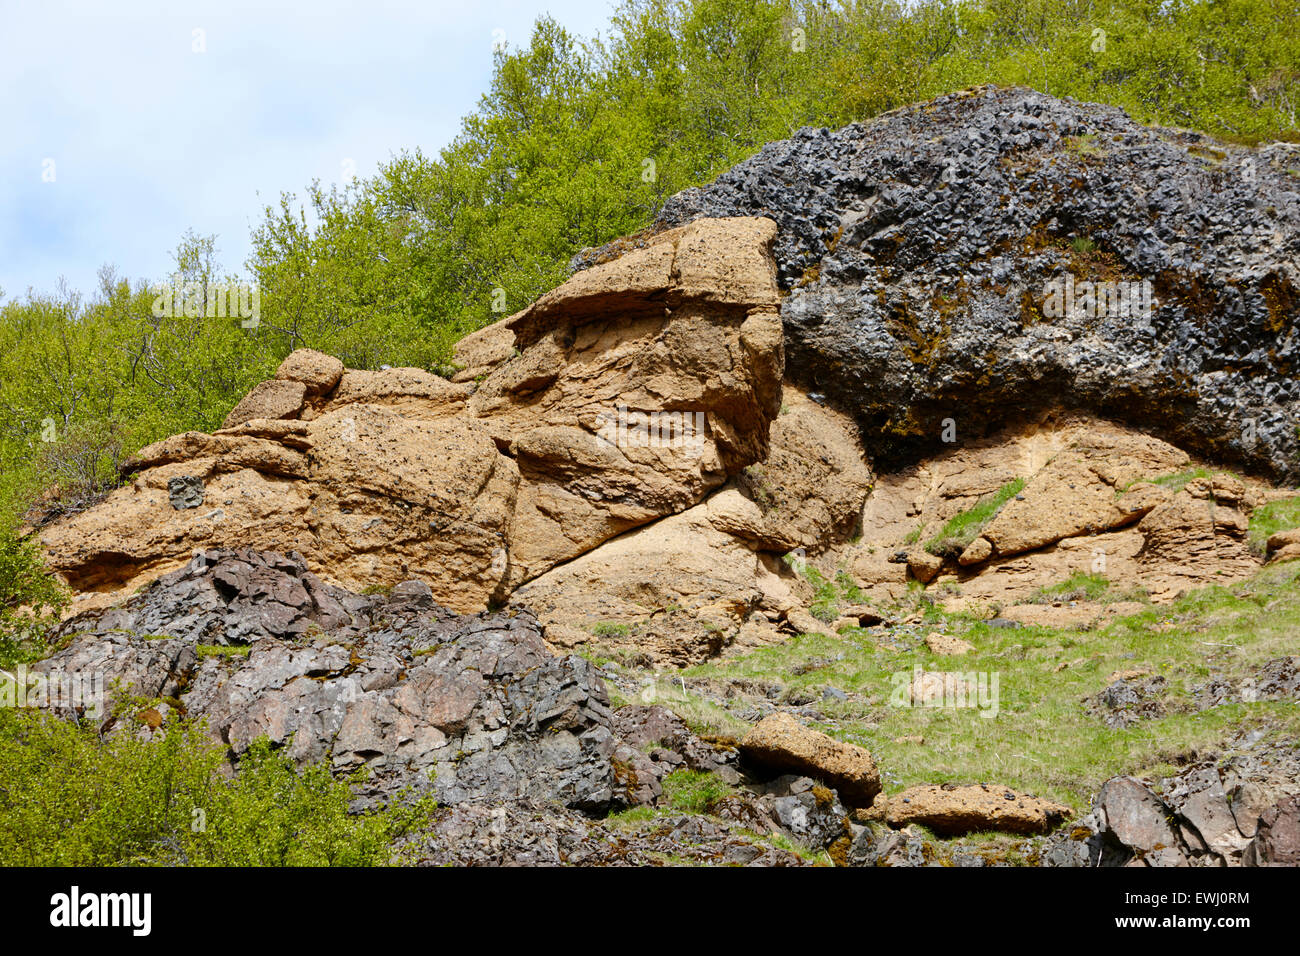 layer of tuff rock on hillside in Iceland - Stock Image